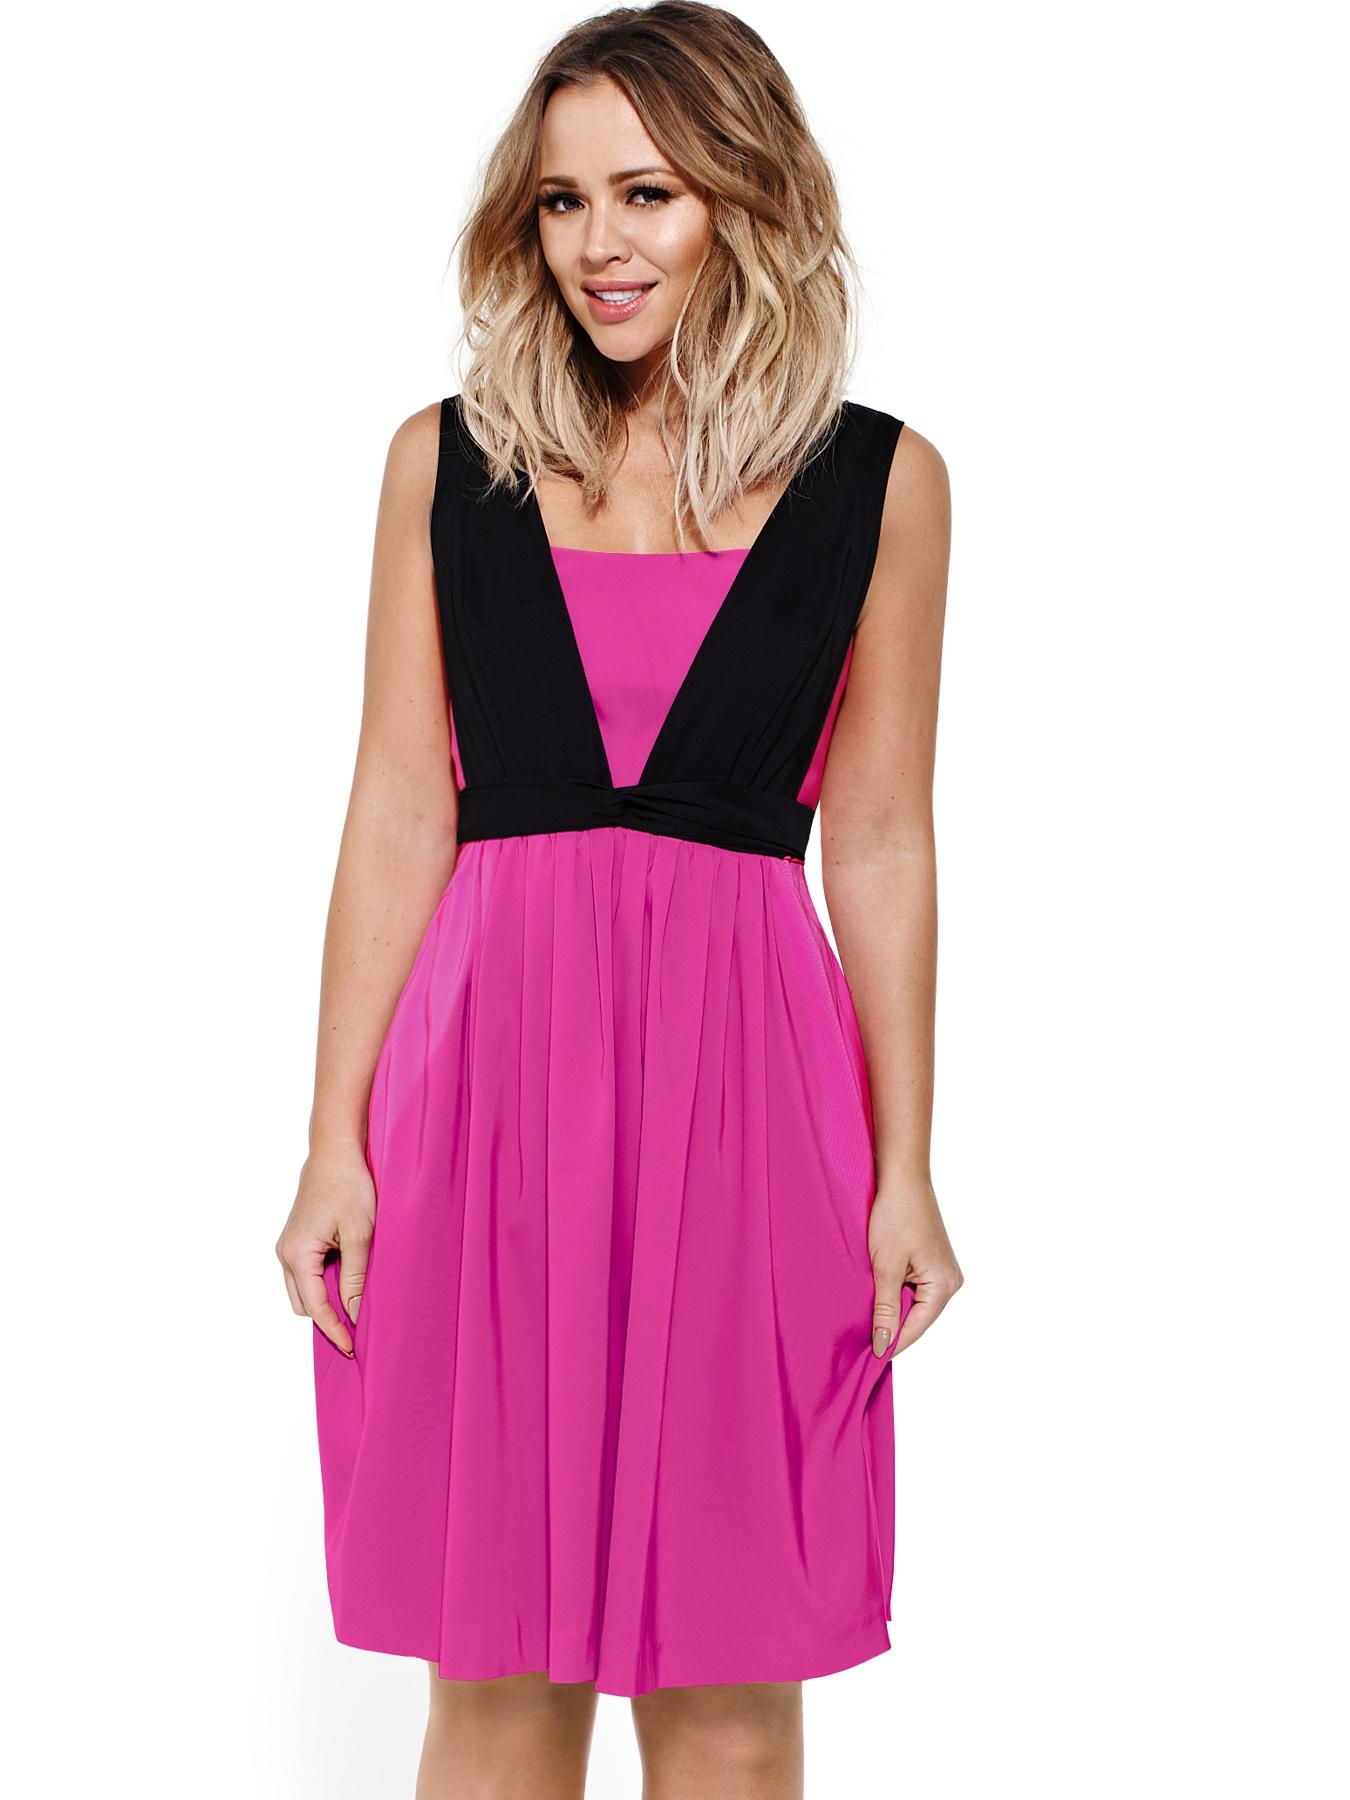 Kimberley Full Skirt Bib Dress